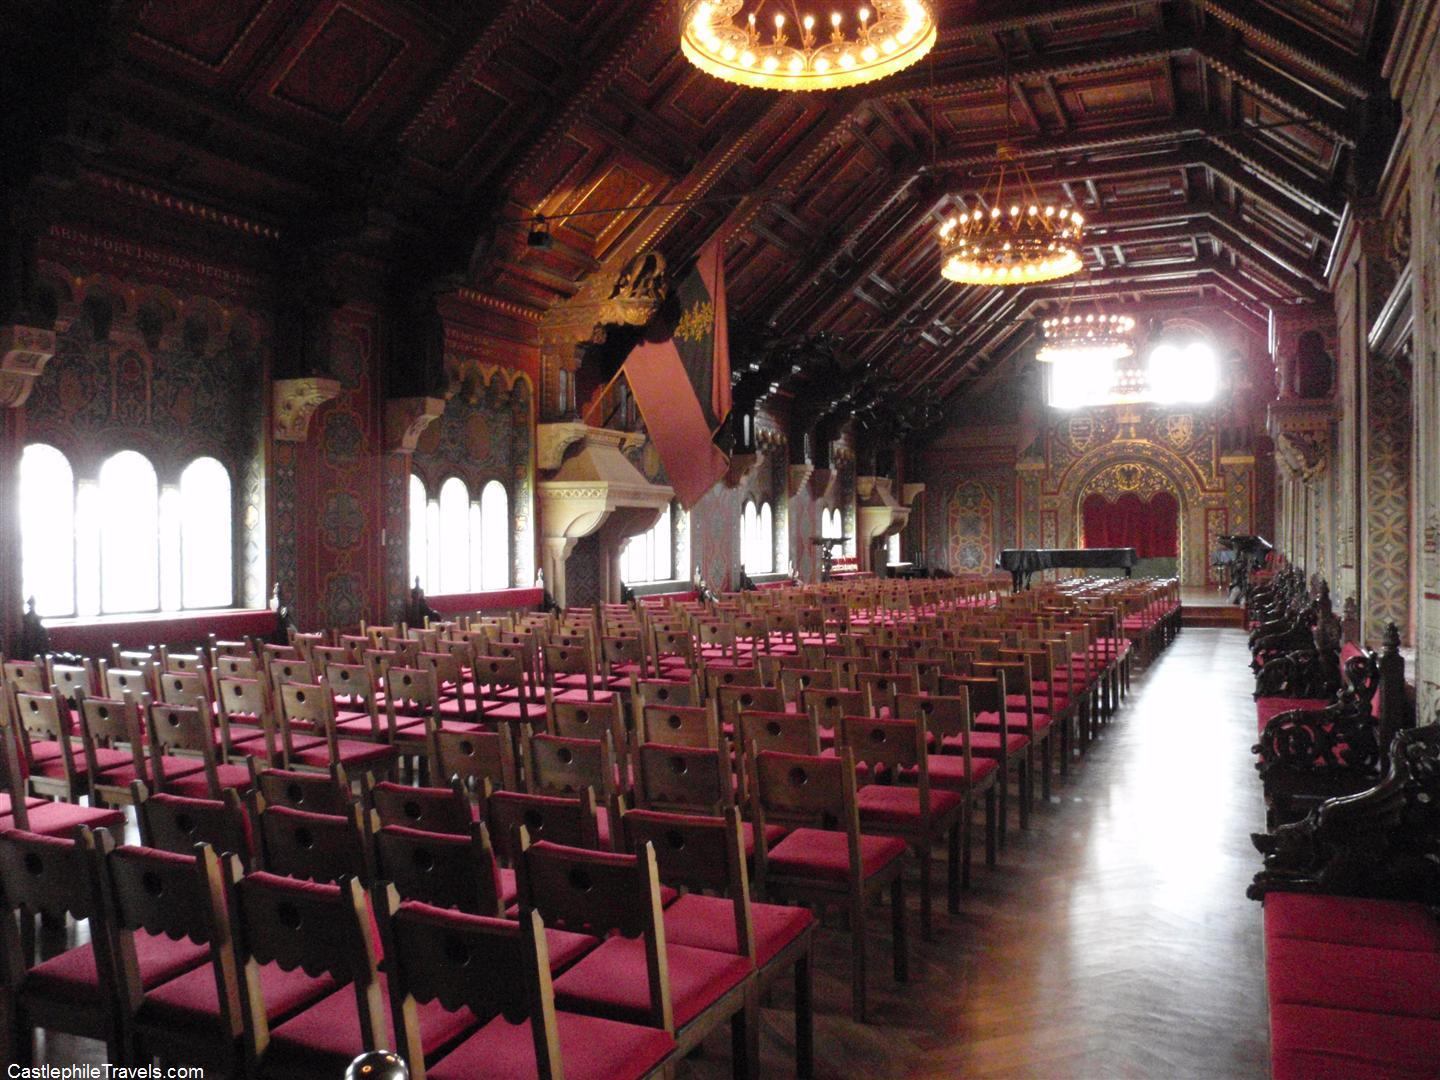 The Festival Hall at the Wartburg